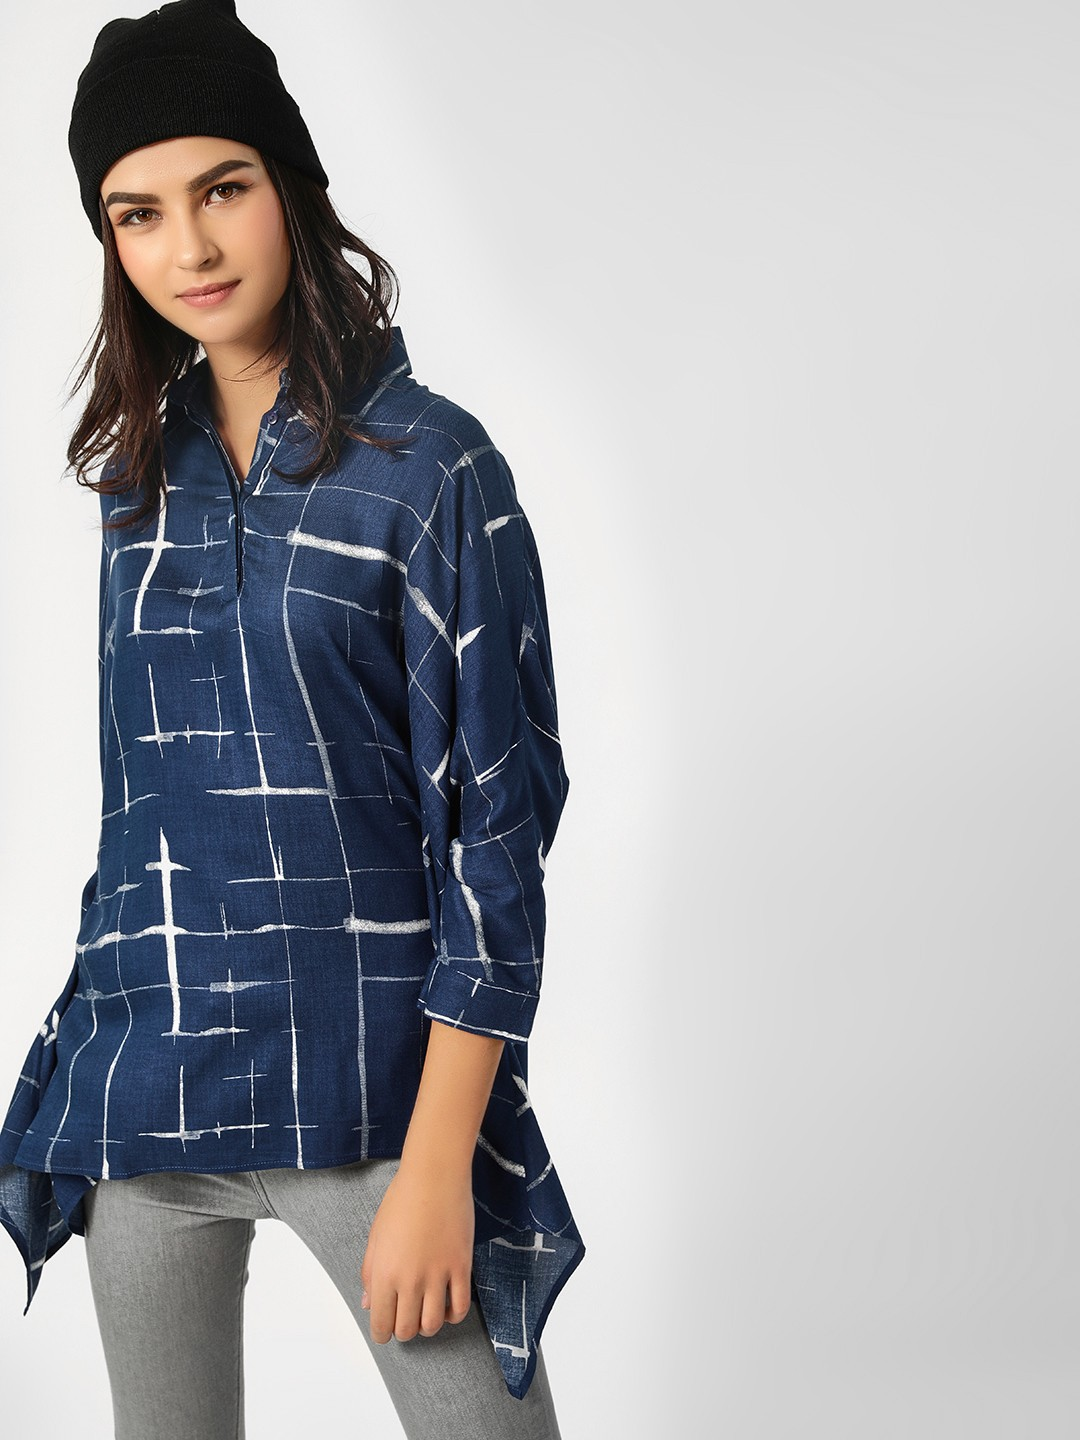 Femella Blue Abstract Checkered Print Oversized Shirt 1